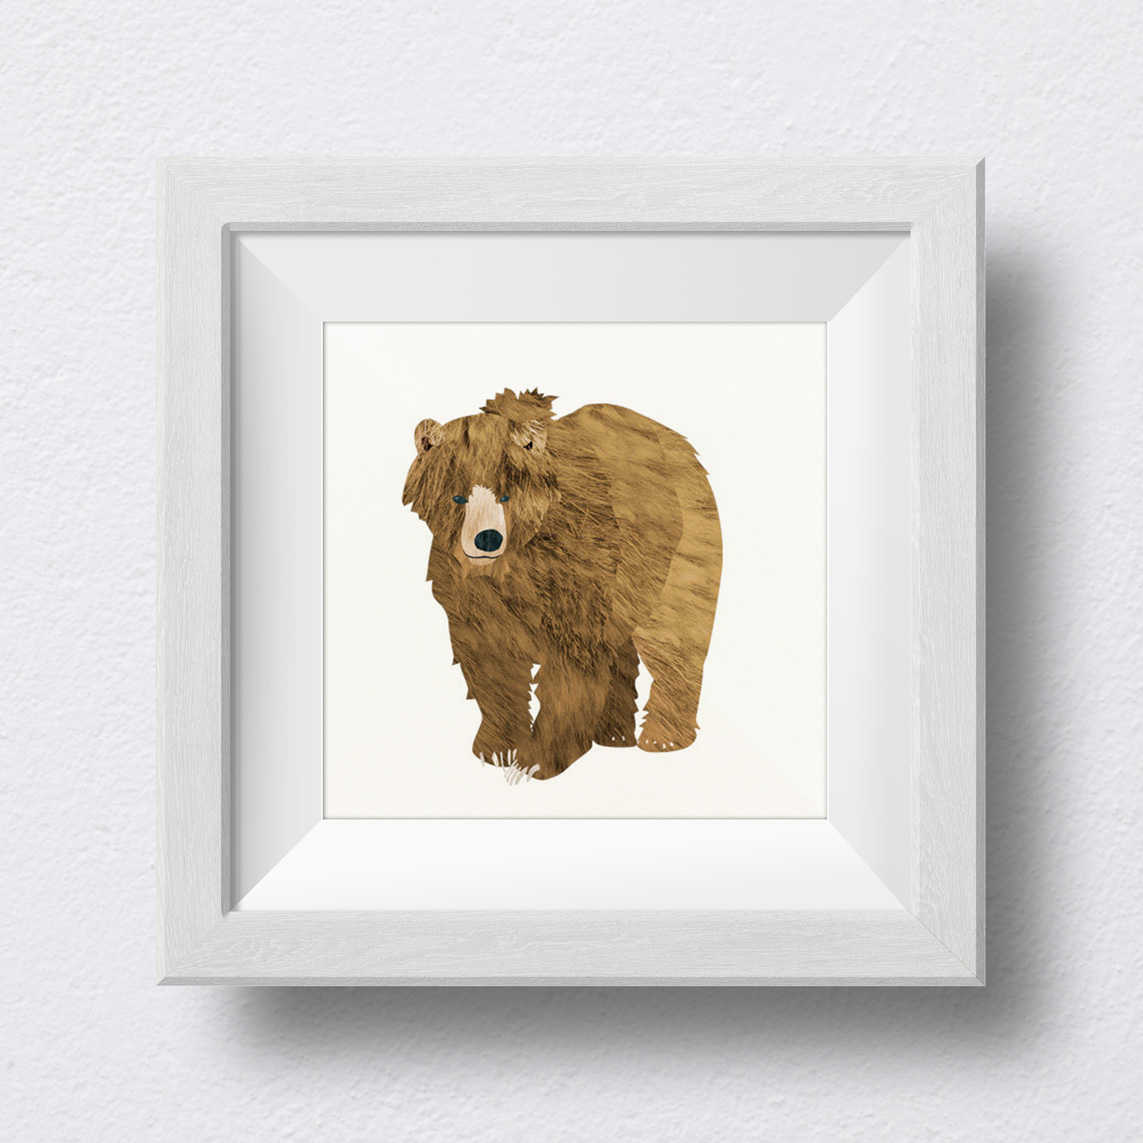 creatura-world-framed-bear